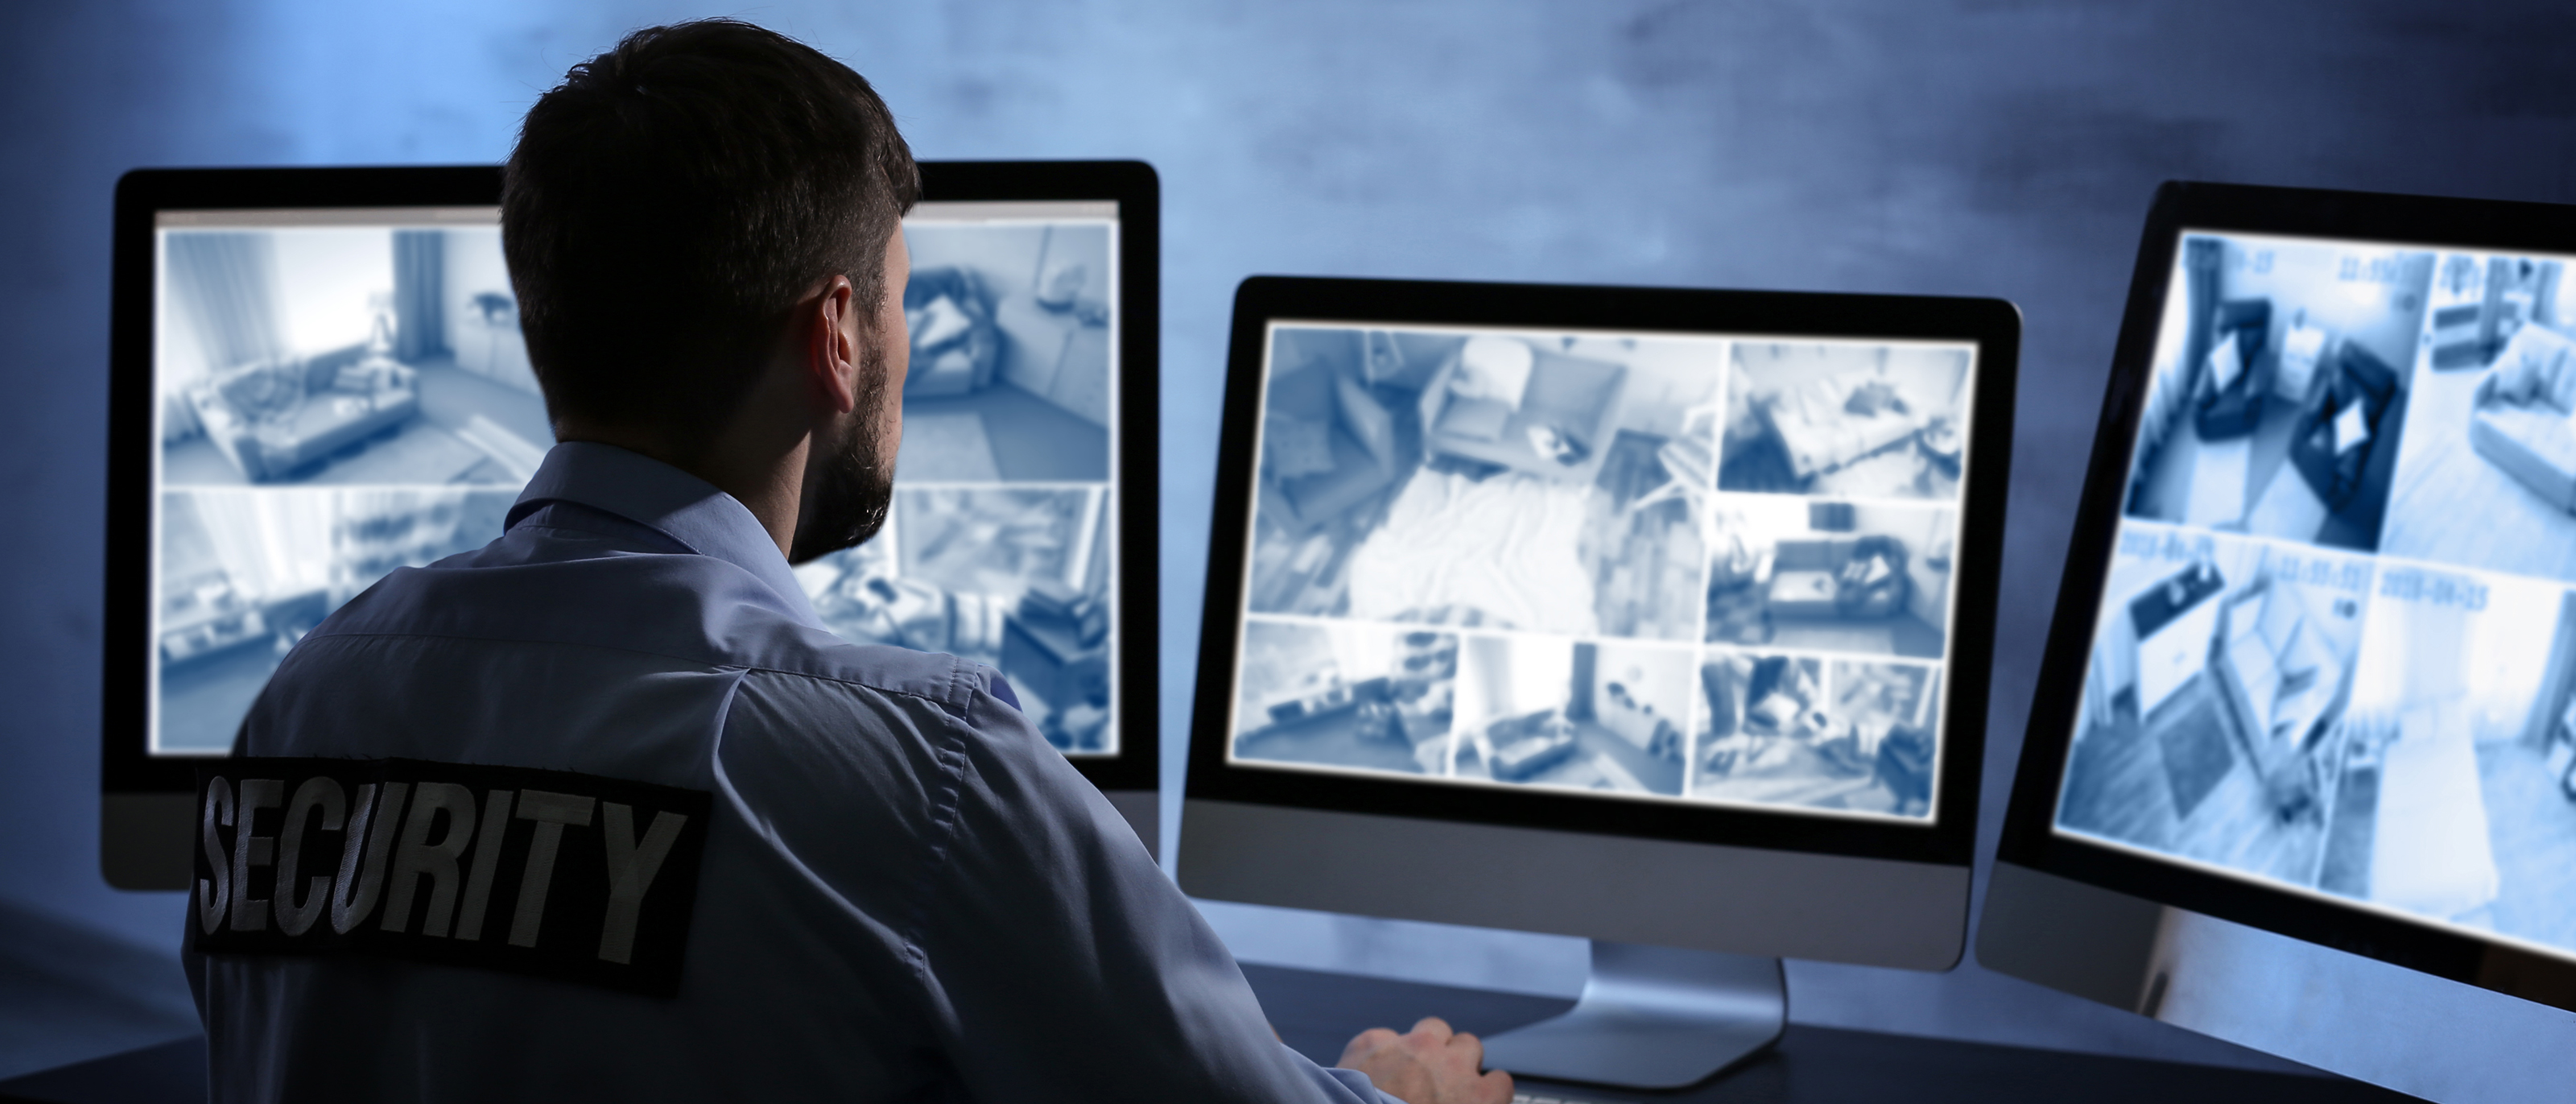 Case study - Improved customer experience with video audits, video surveillance, and analytics